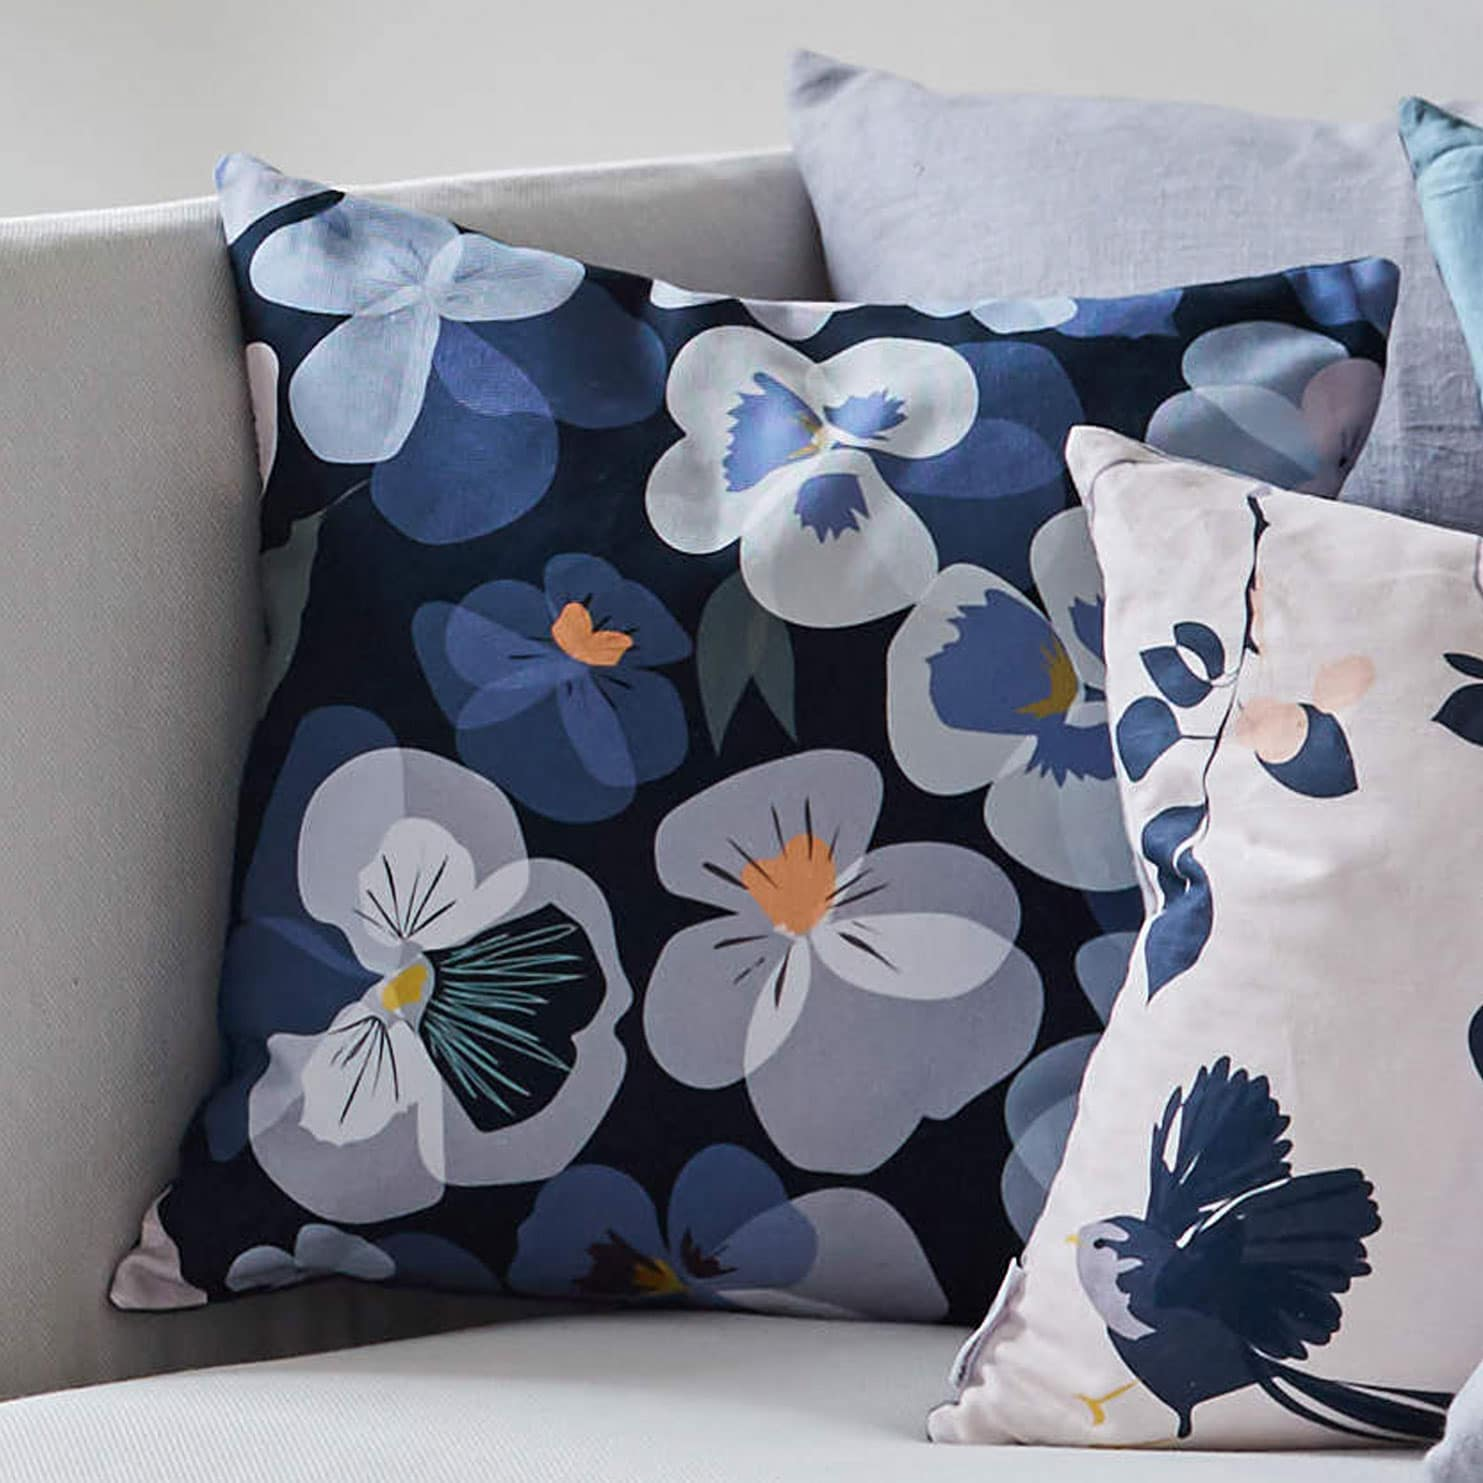 floral cushion by lorna syson